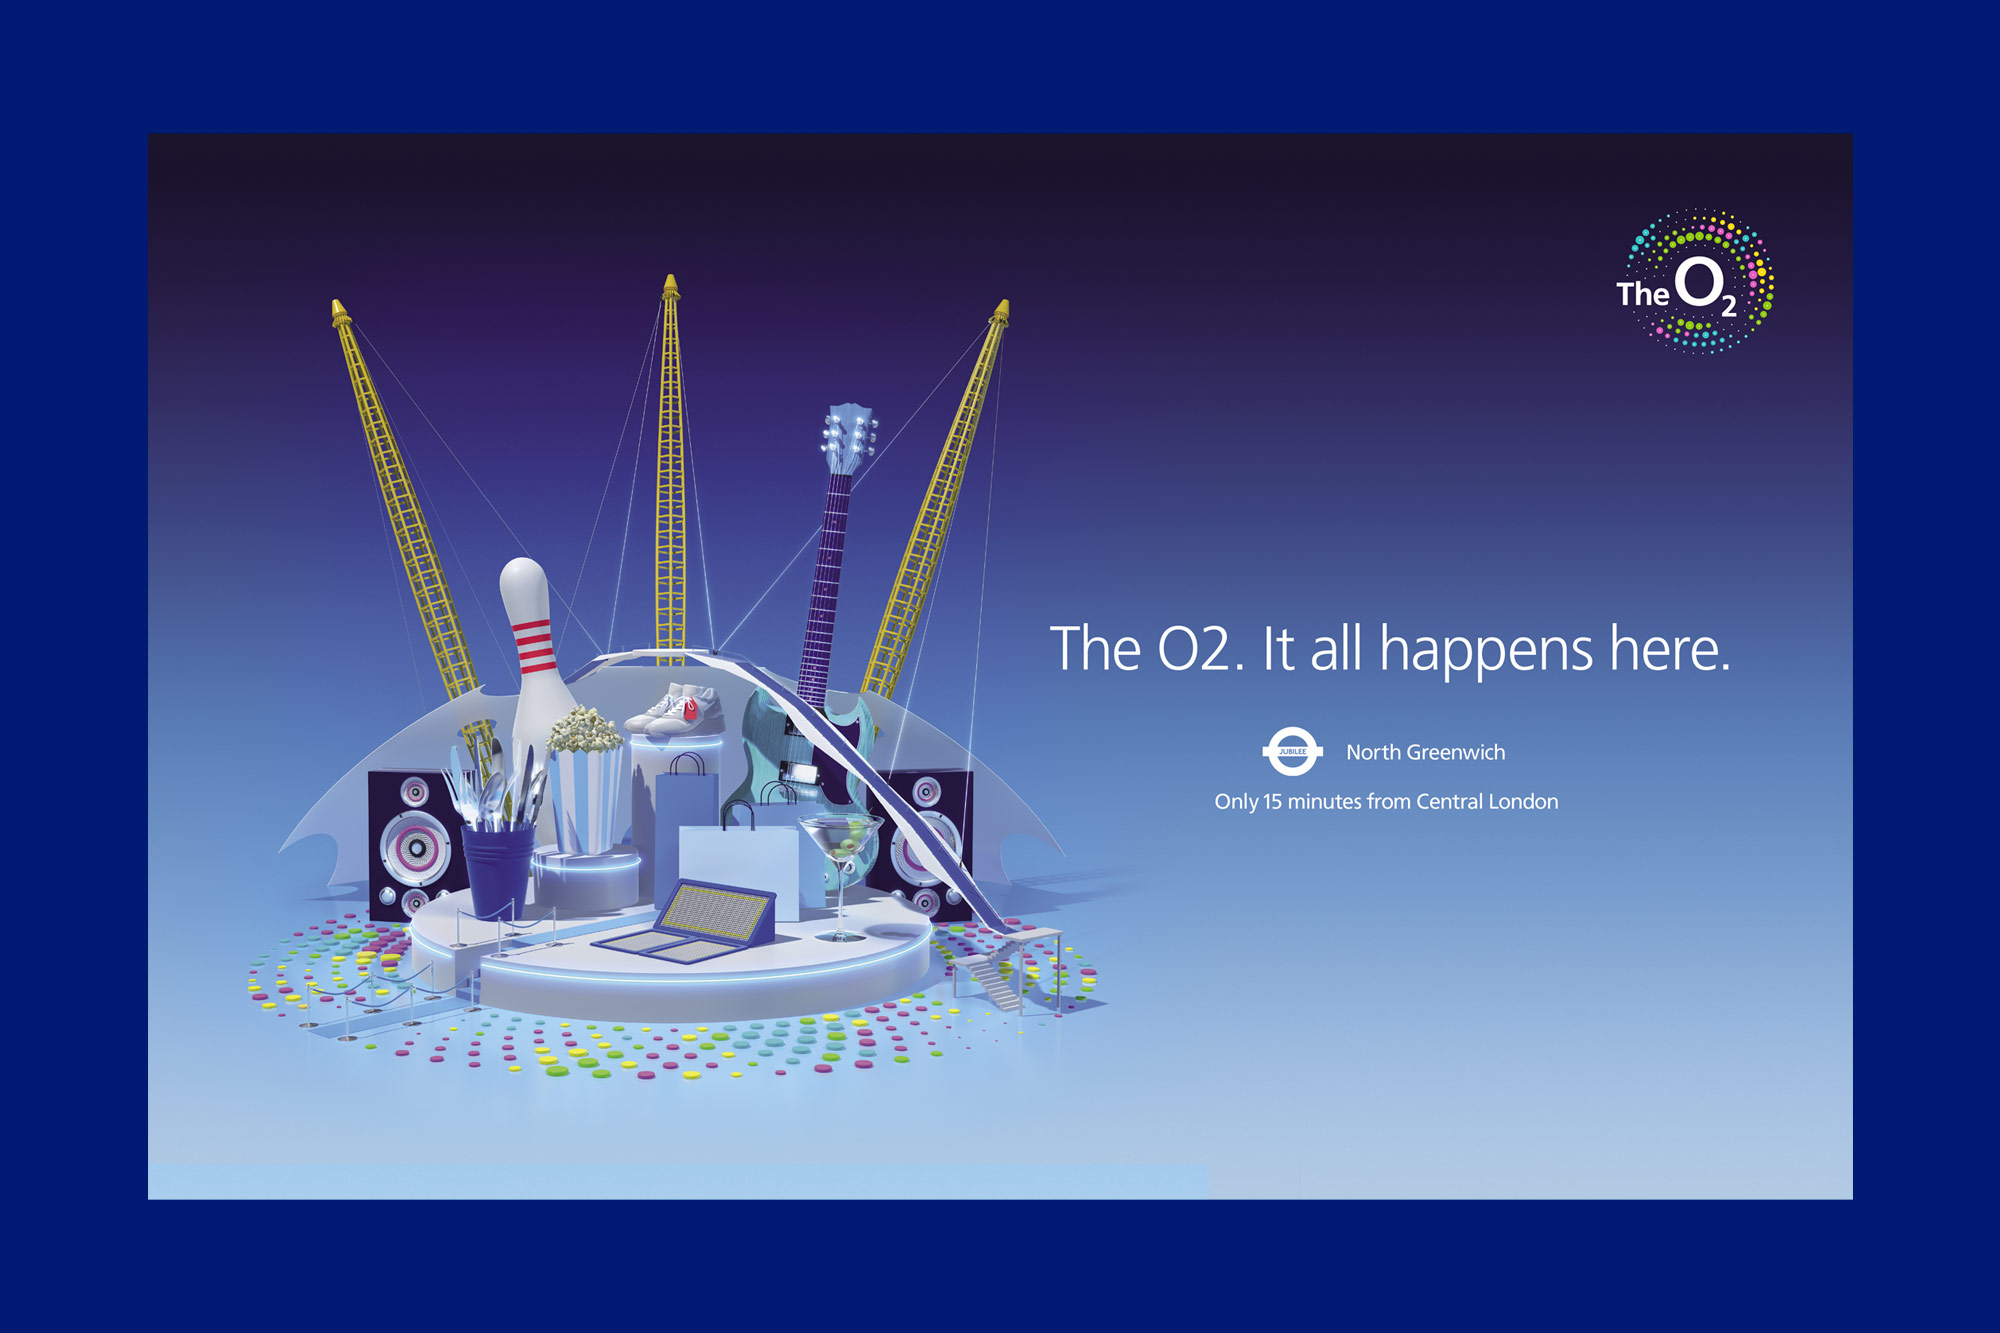 gareth-paul-jones-studio-the-o2-destination-case-study-04